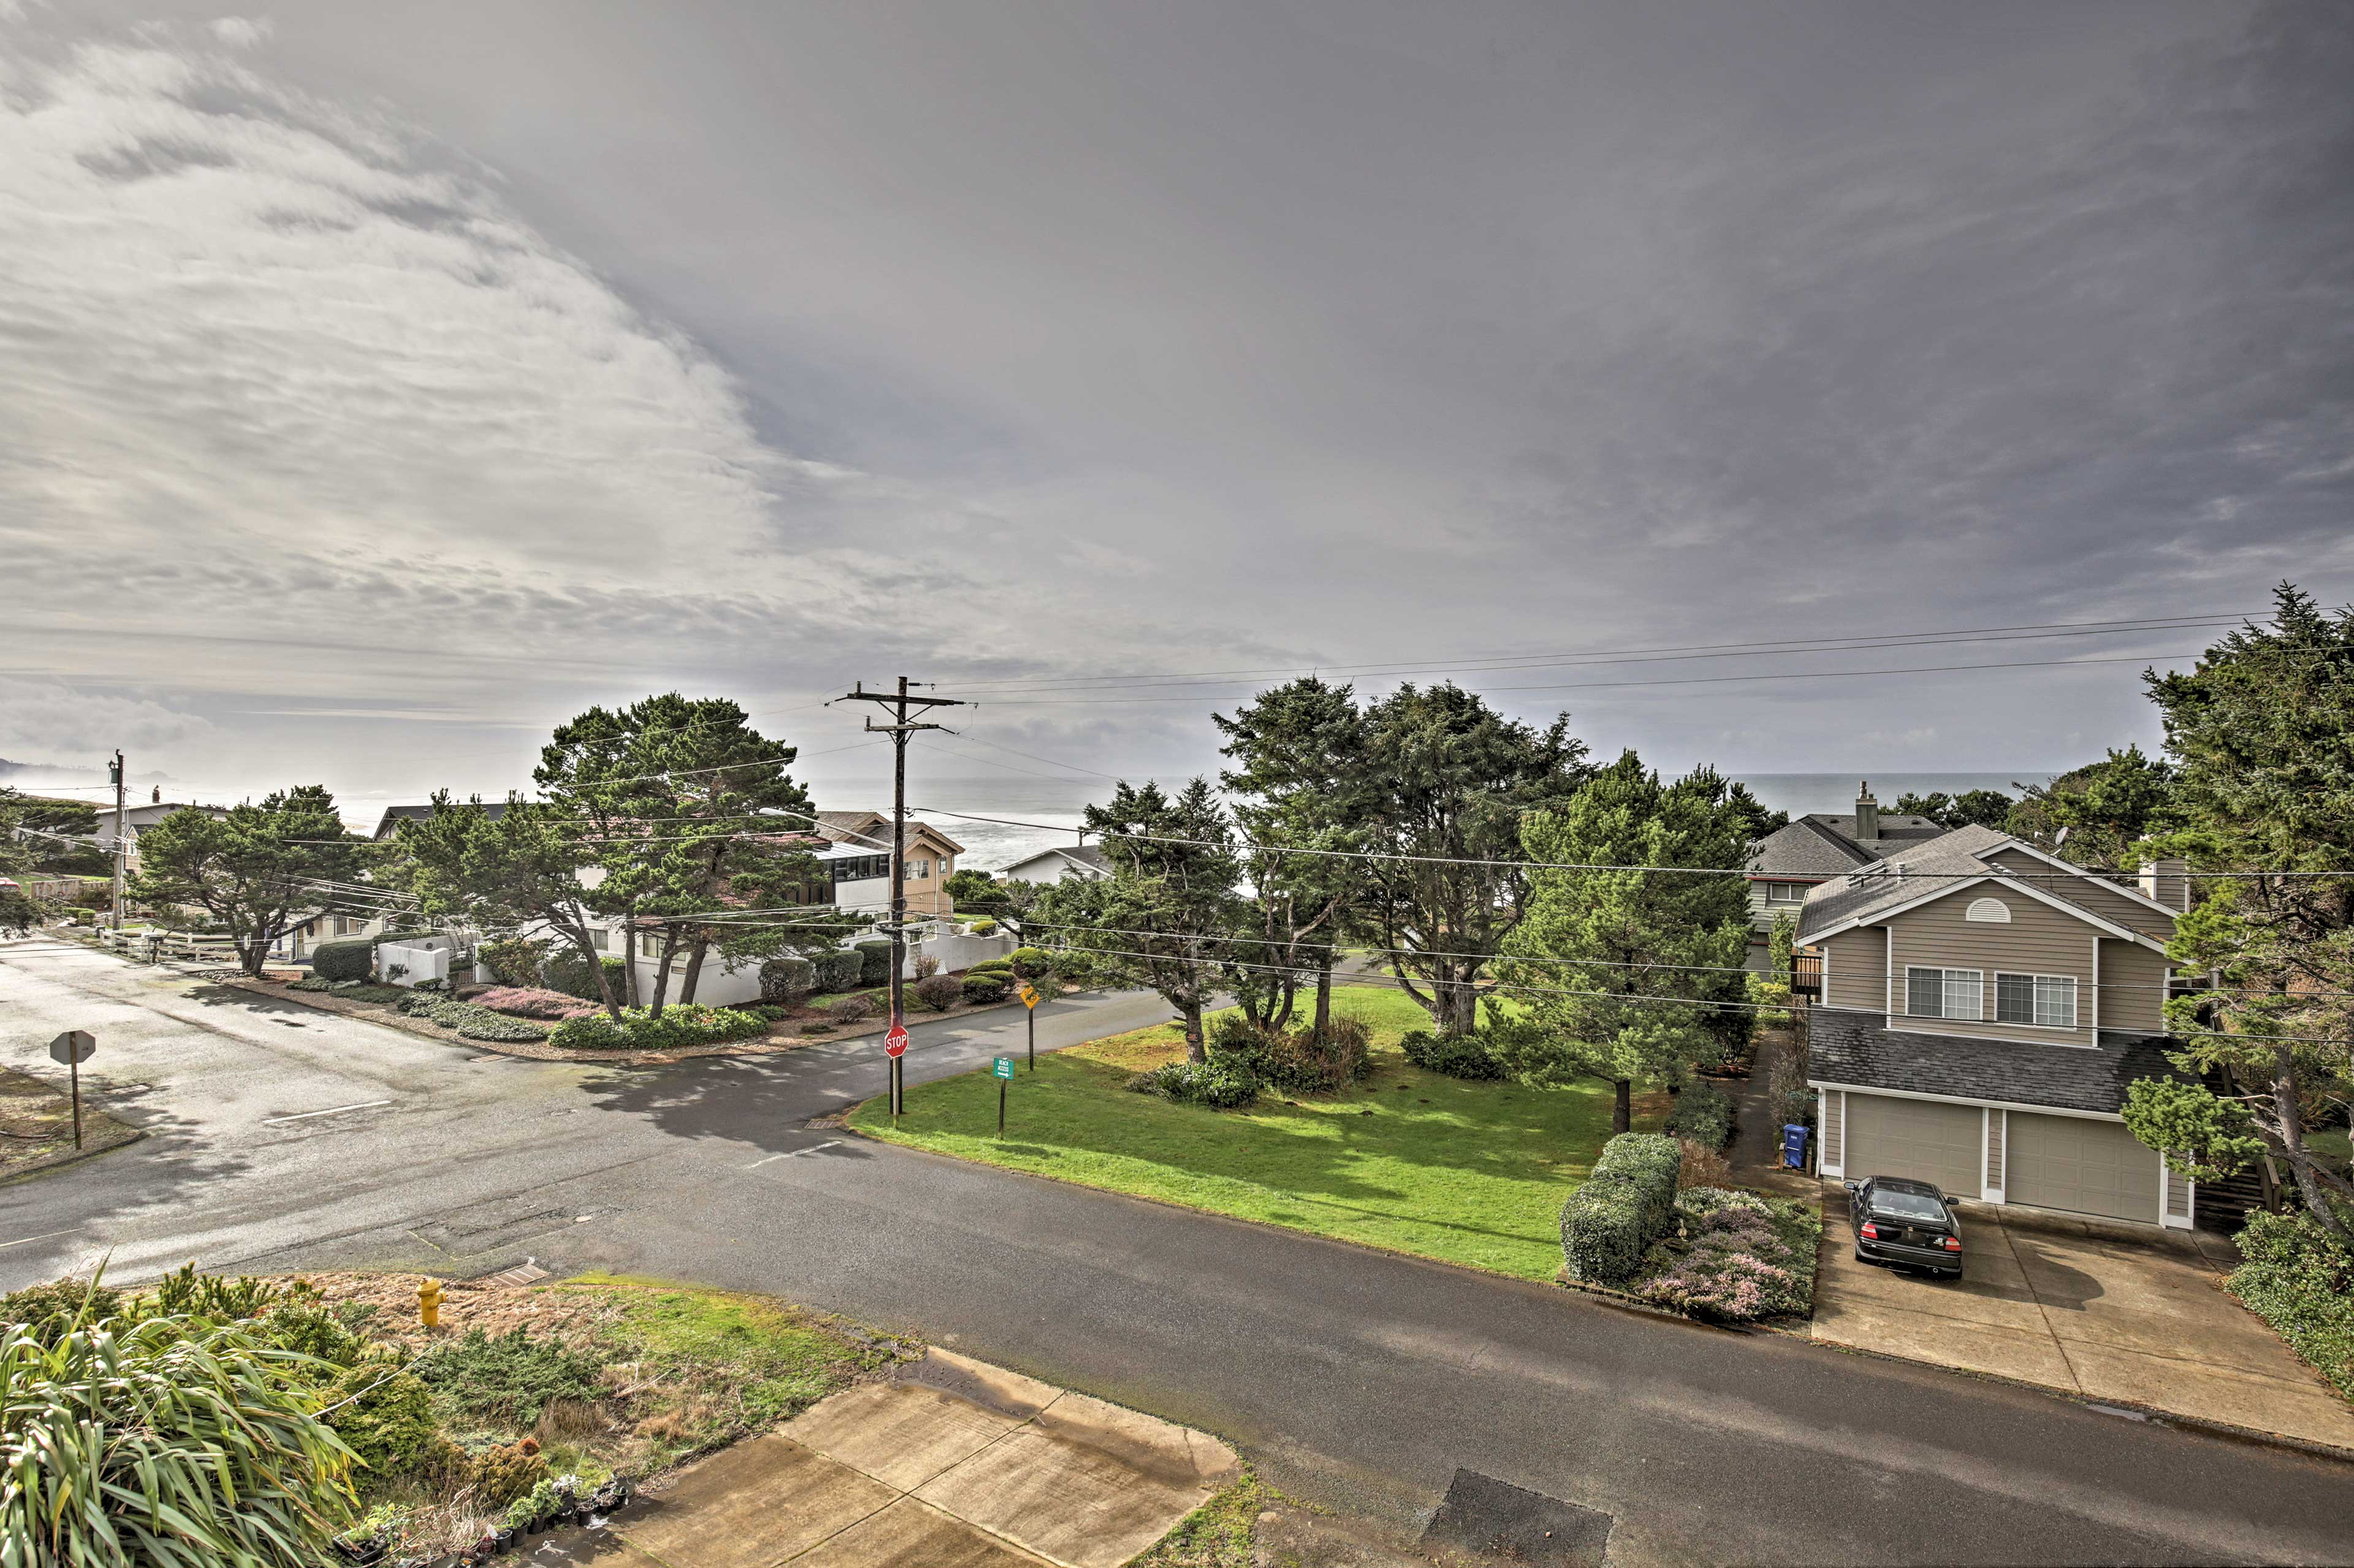 Walks just 8 houses down to Siletz Bay.